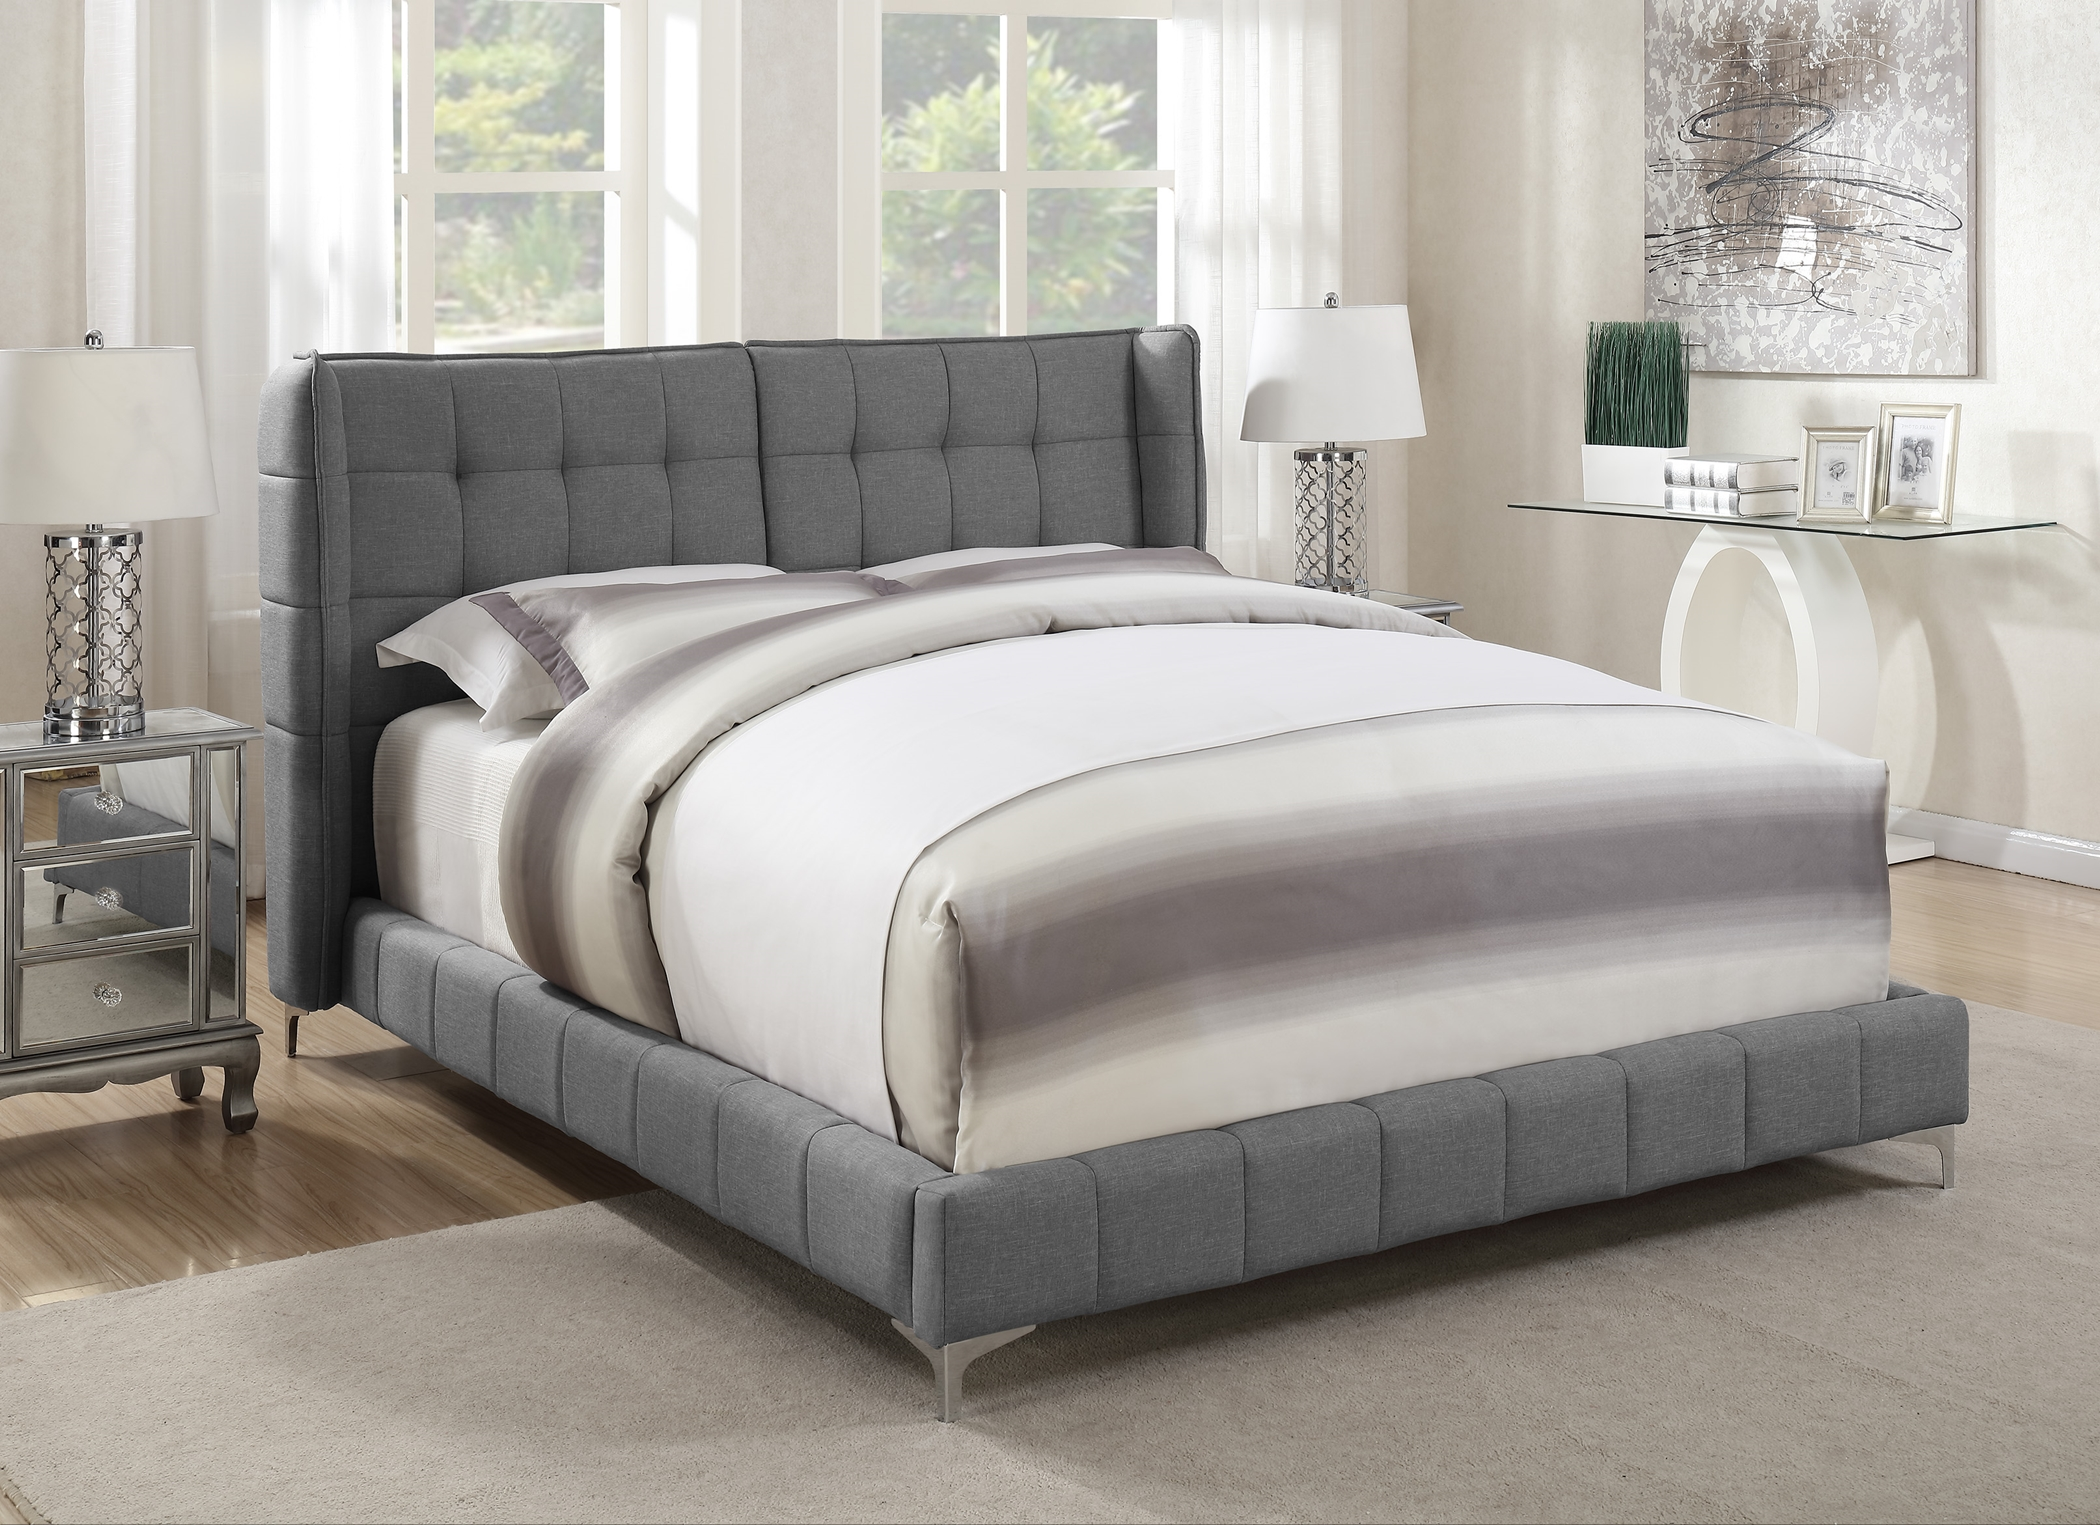 Goleta Grey Upholstered Full Bed Box One